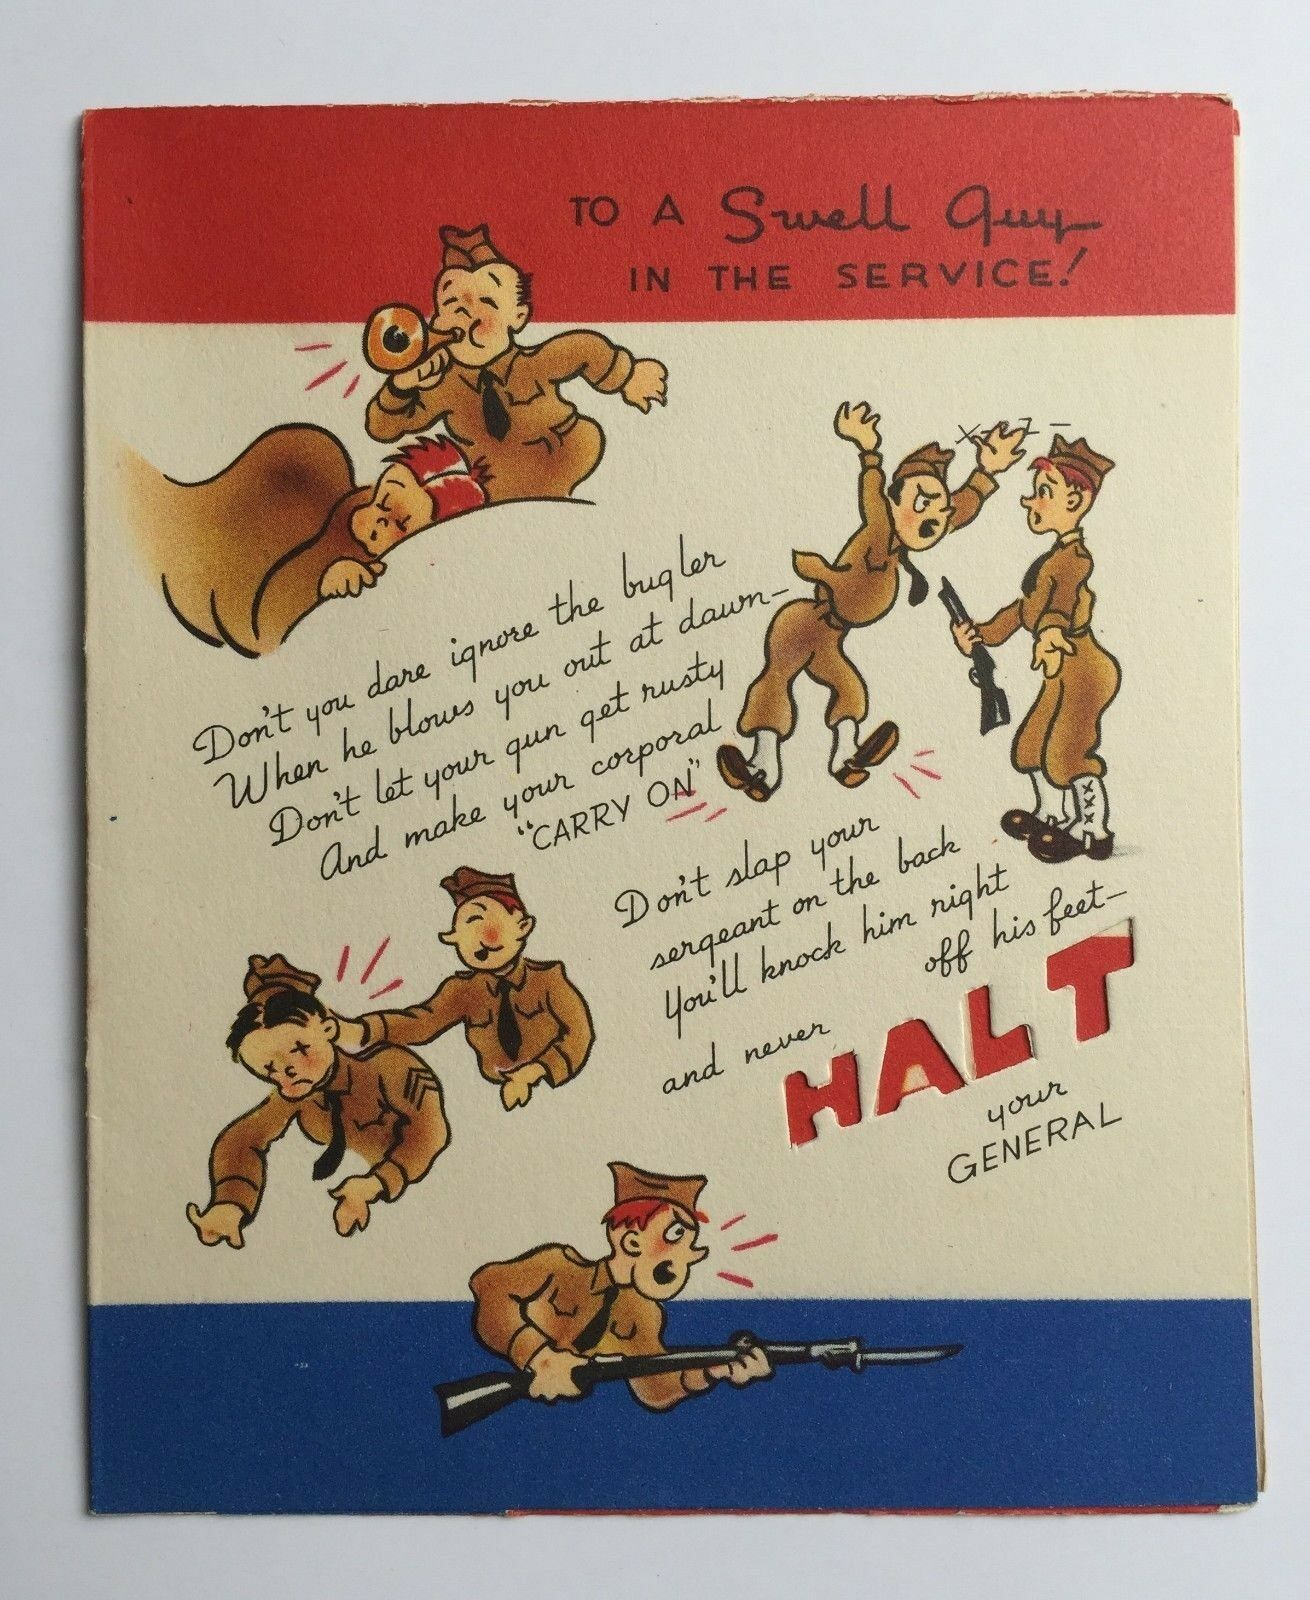 Vintage 1940s Wwii Era Greeting Card To A Swell Guy In The Service